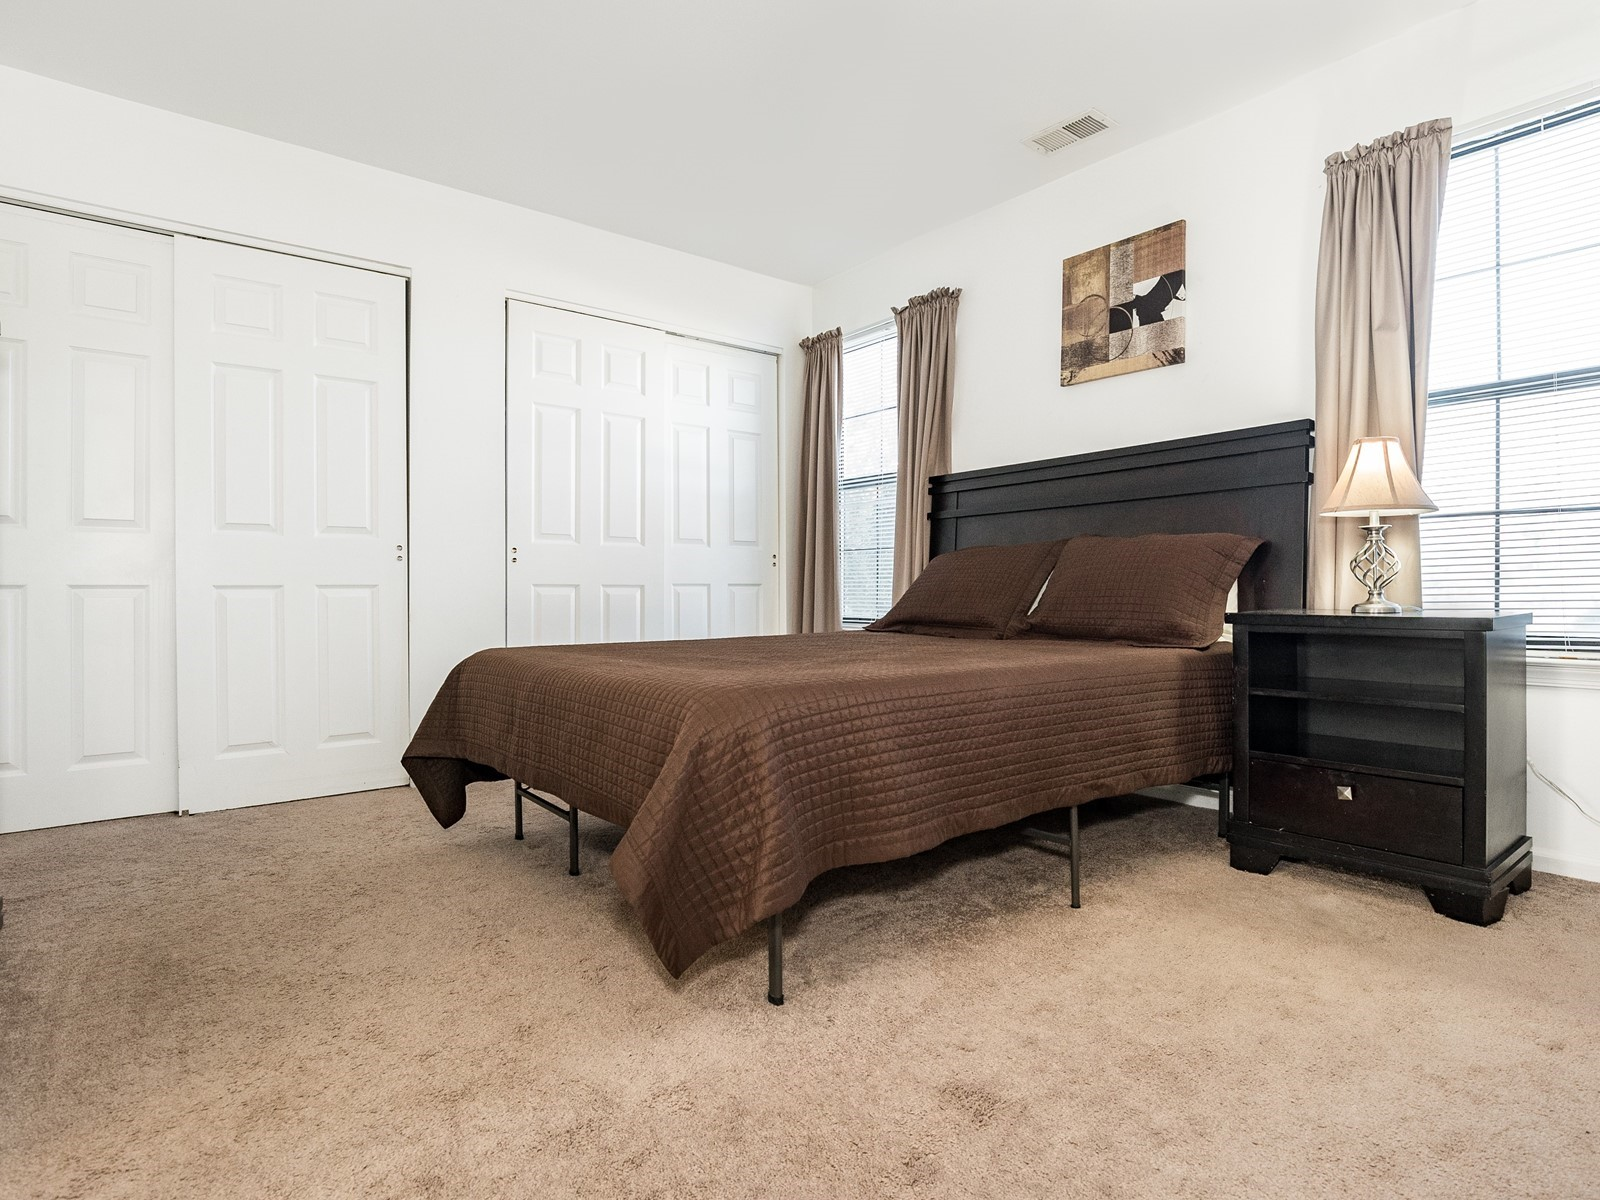 Woodbridge 404 Furnished Apartment Bedroom with large tv and spacious closets